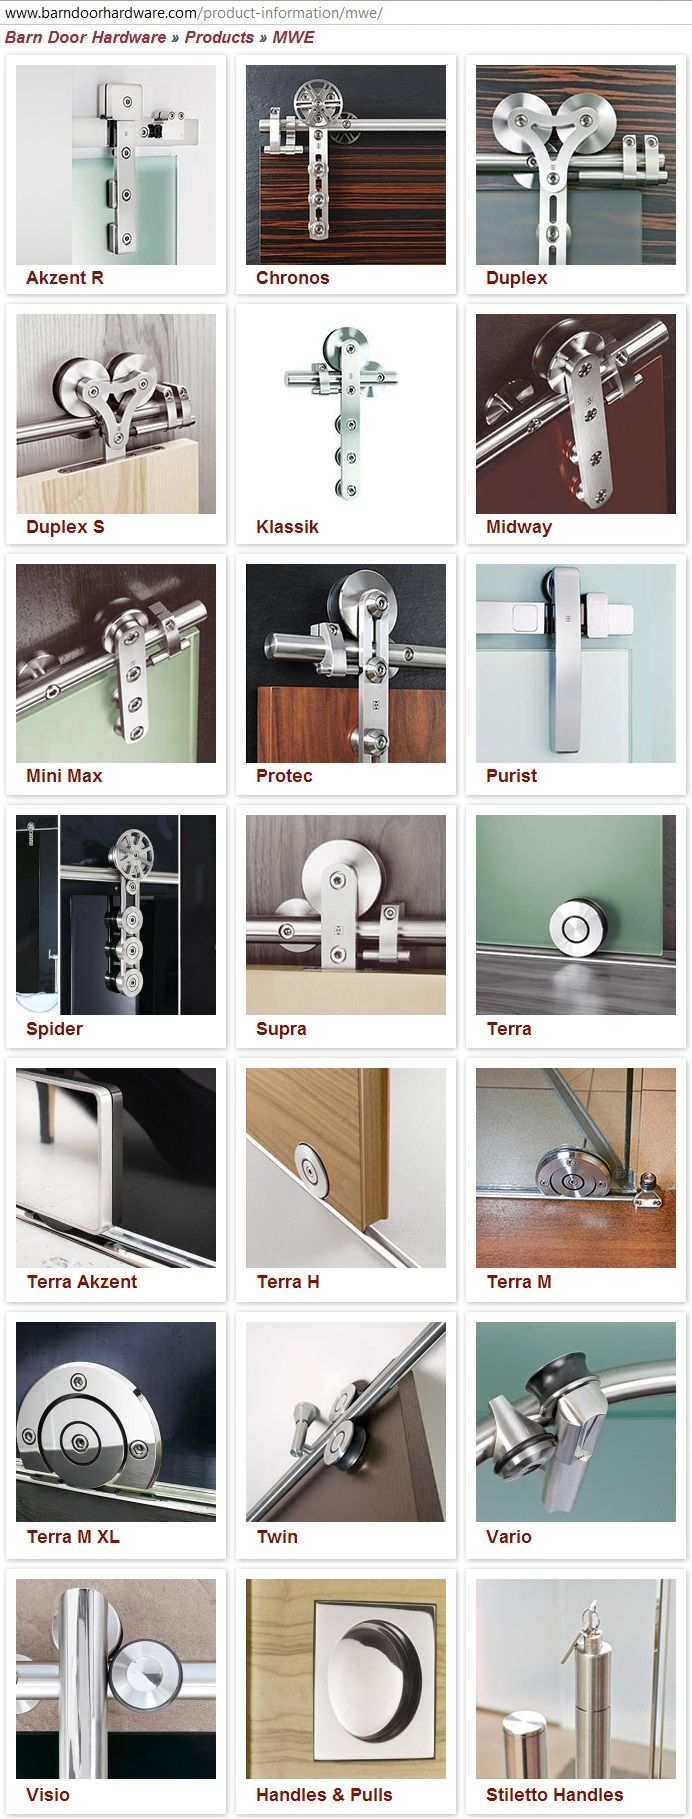 variety of track door hardware for doors and showers... found at http://www.barndoorhardware.com/product-information/mwe/